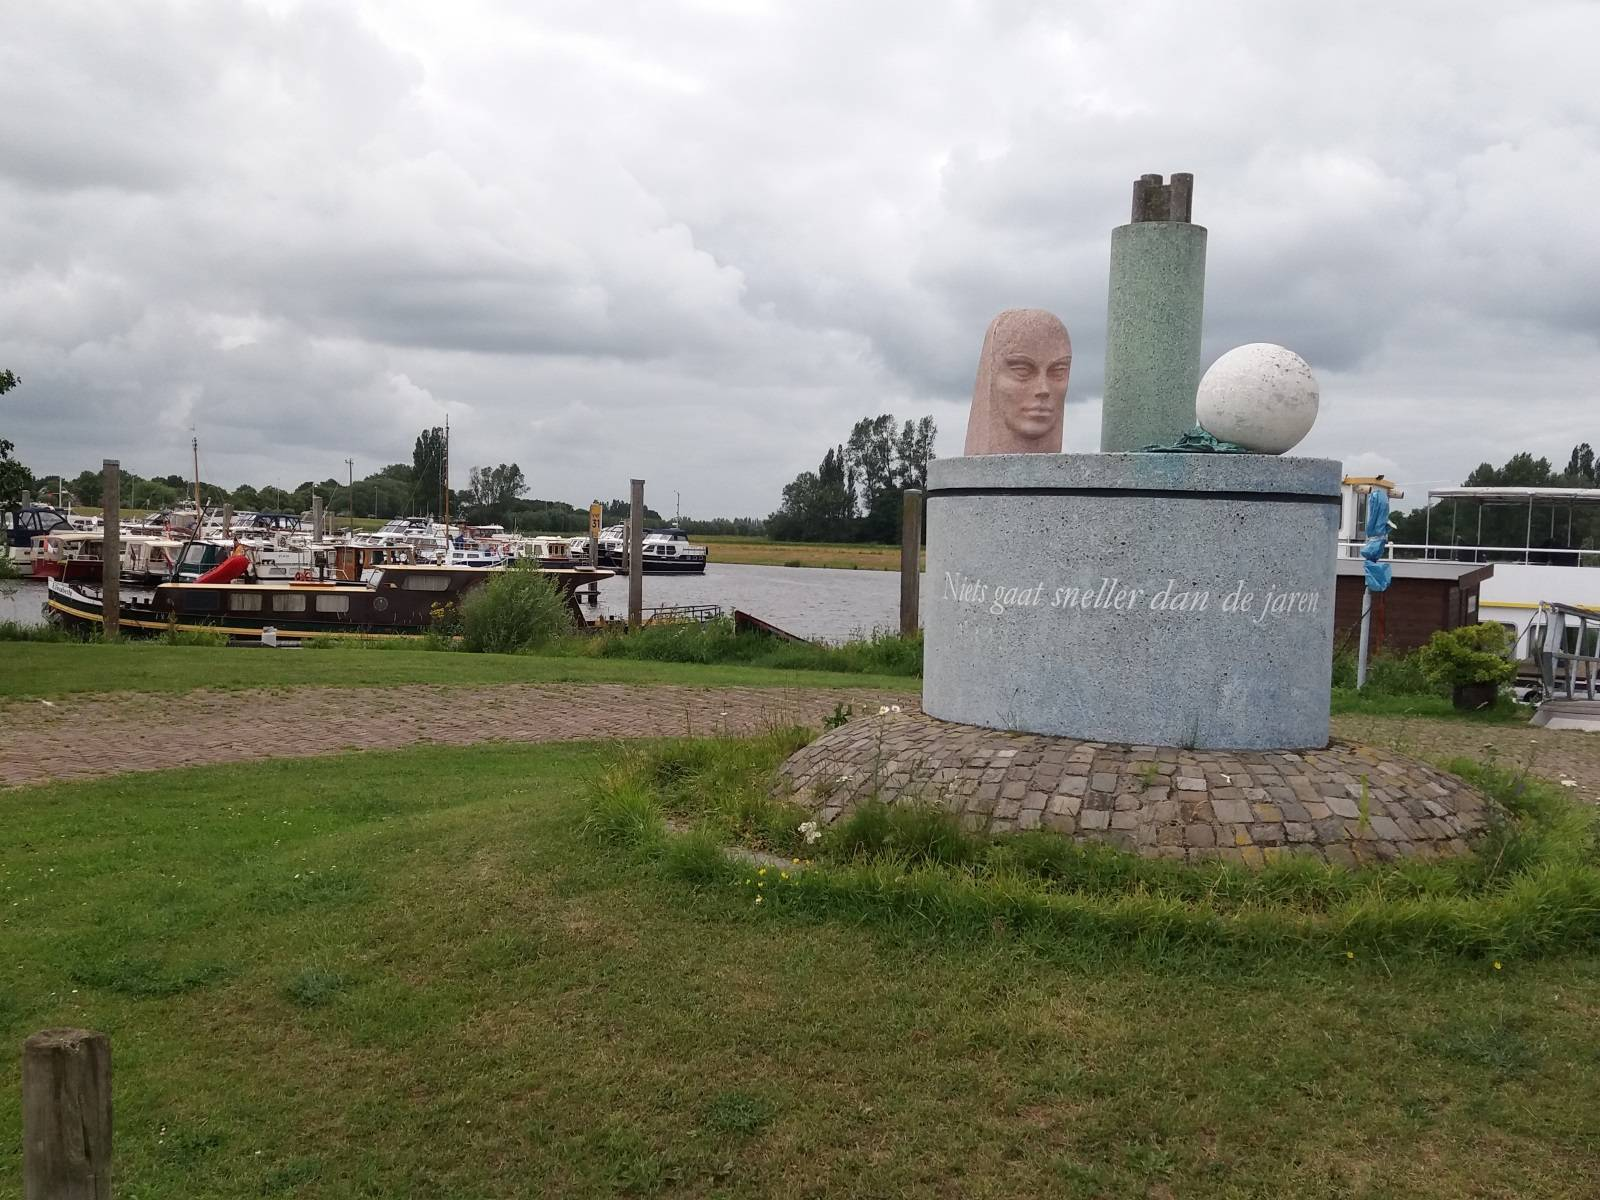 02_camperplaats_Hattem-Haven